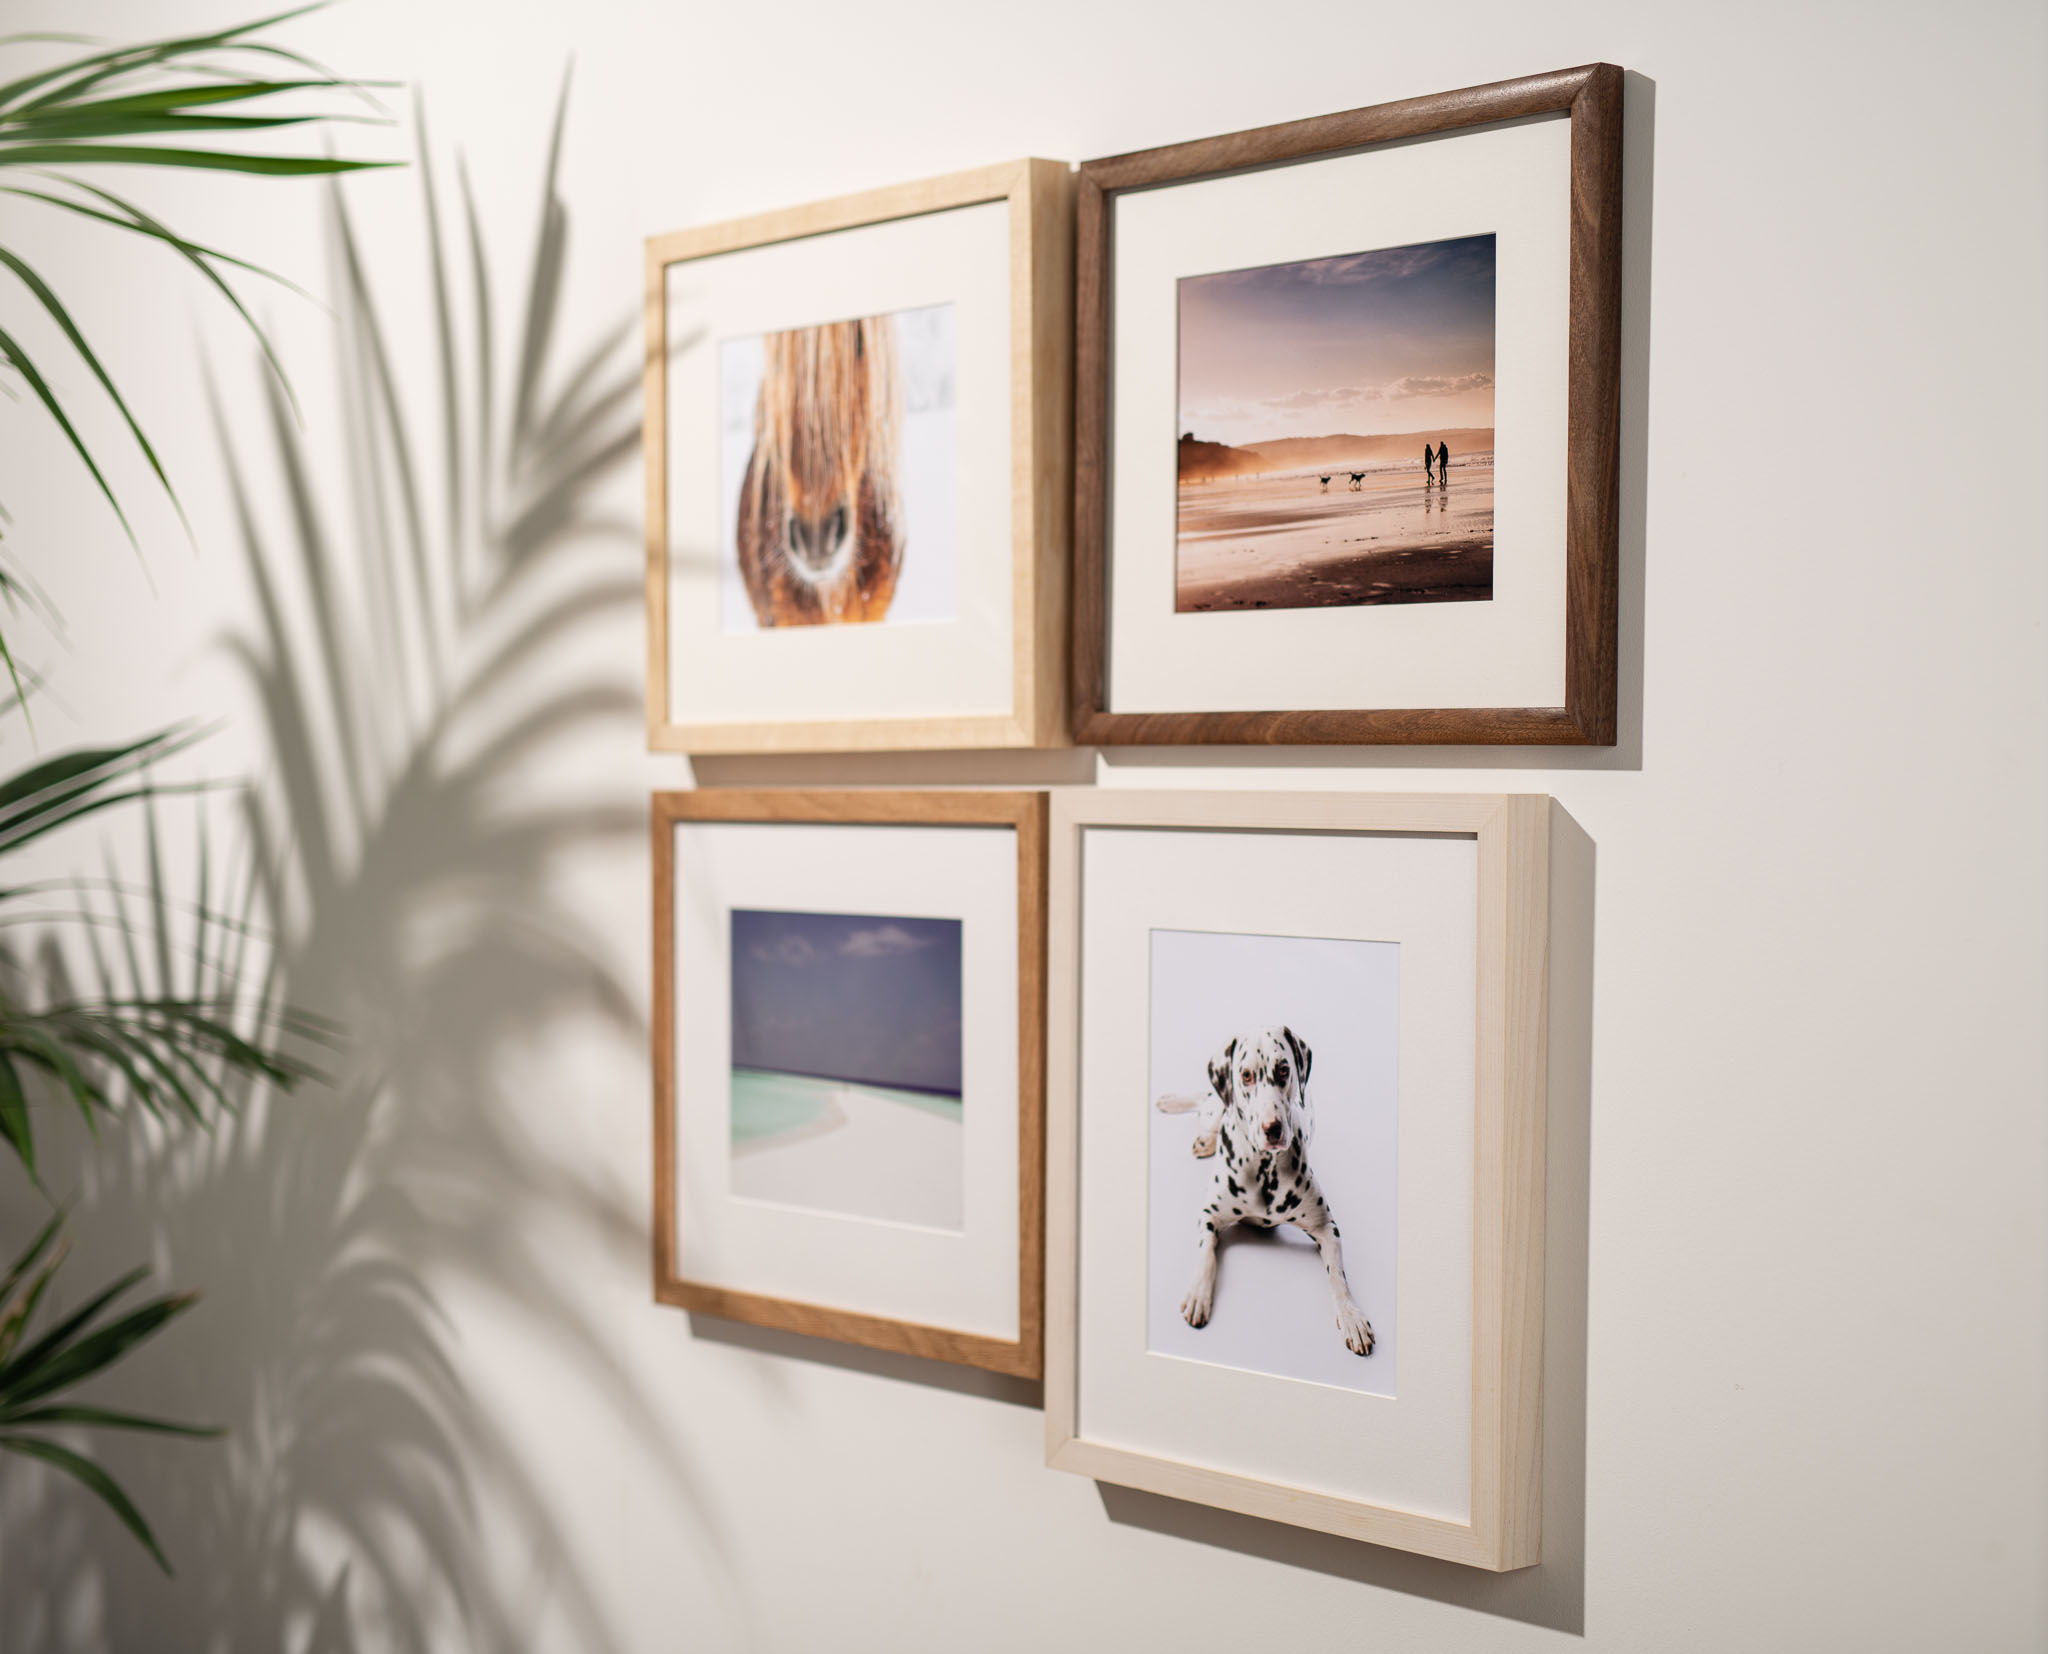 a girl viewipnhoto of four hardwood frames on a wall with a shadow cast by a palm plant.